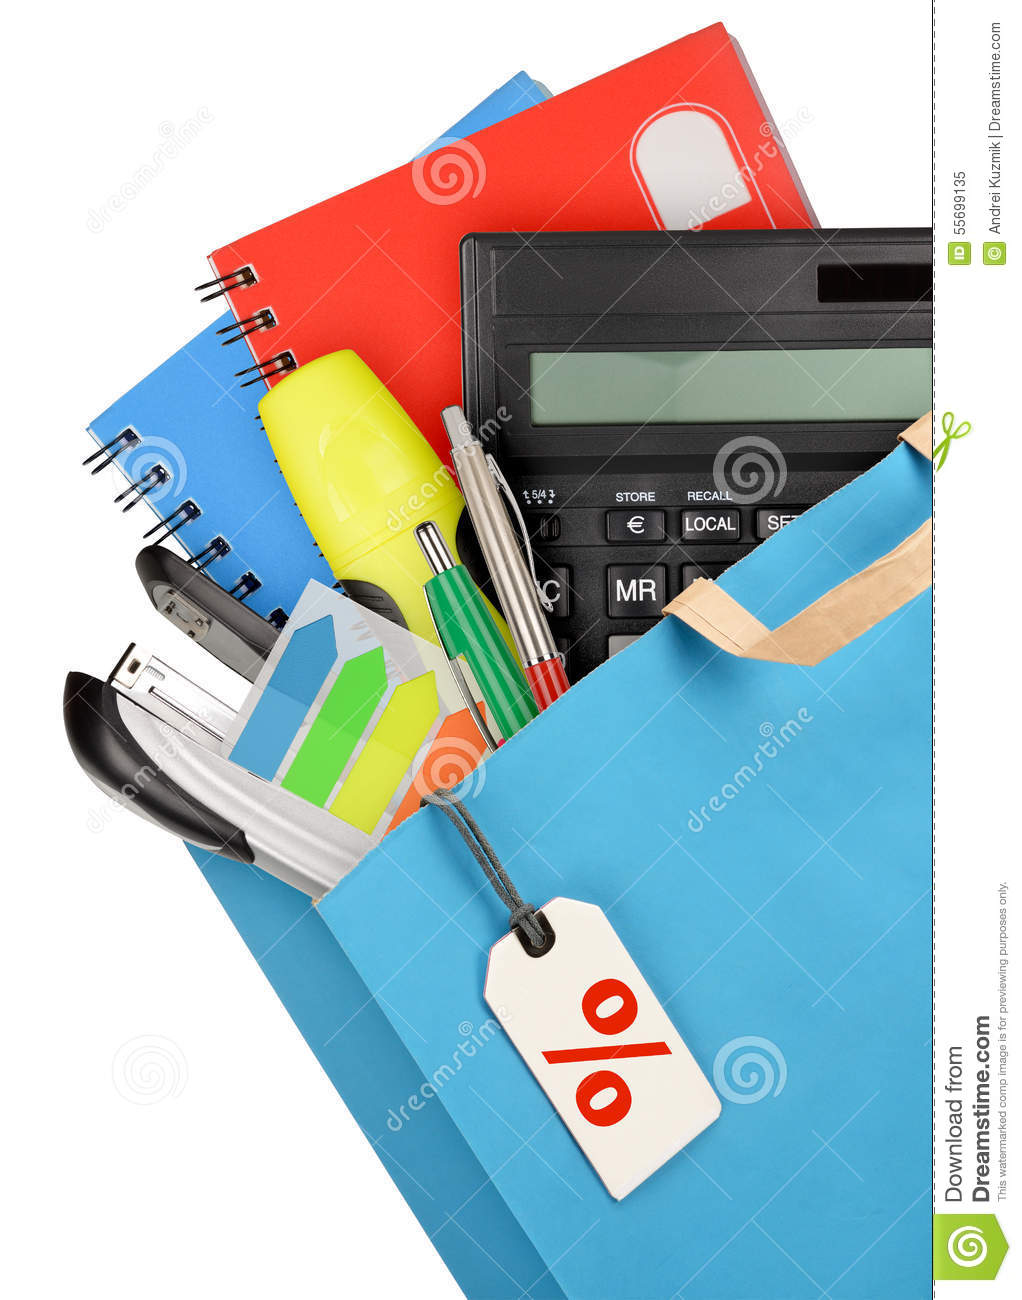 Office Supplies Stock Photo Image 55699135